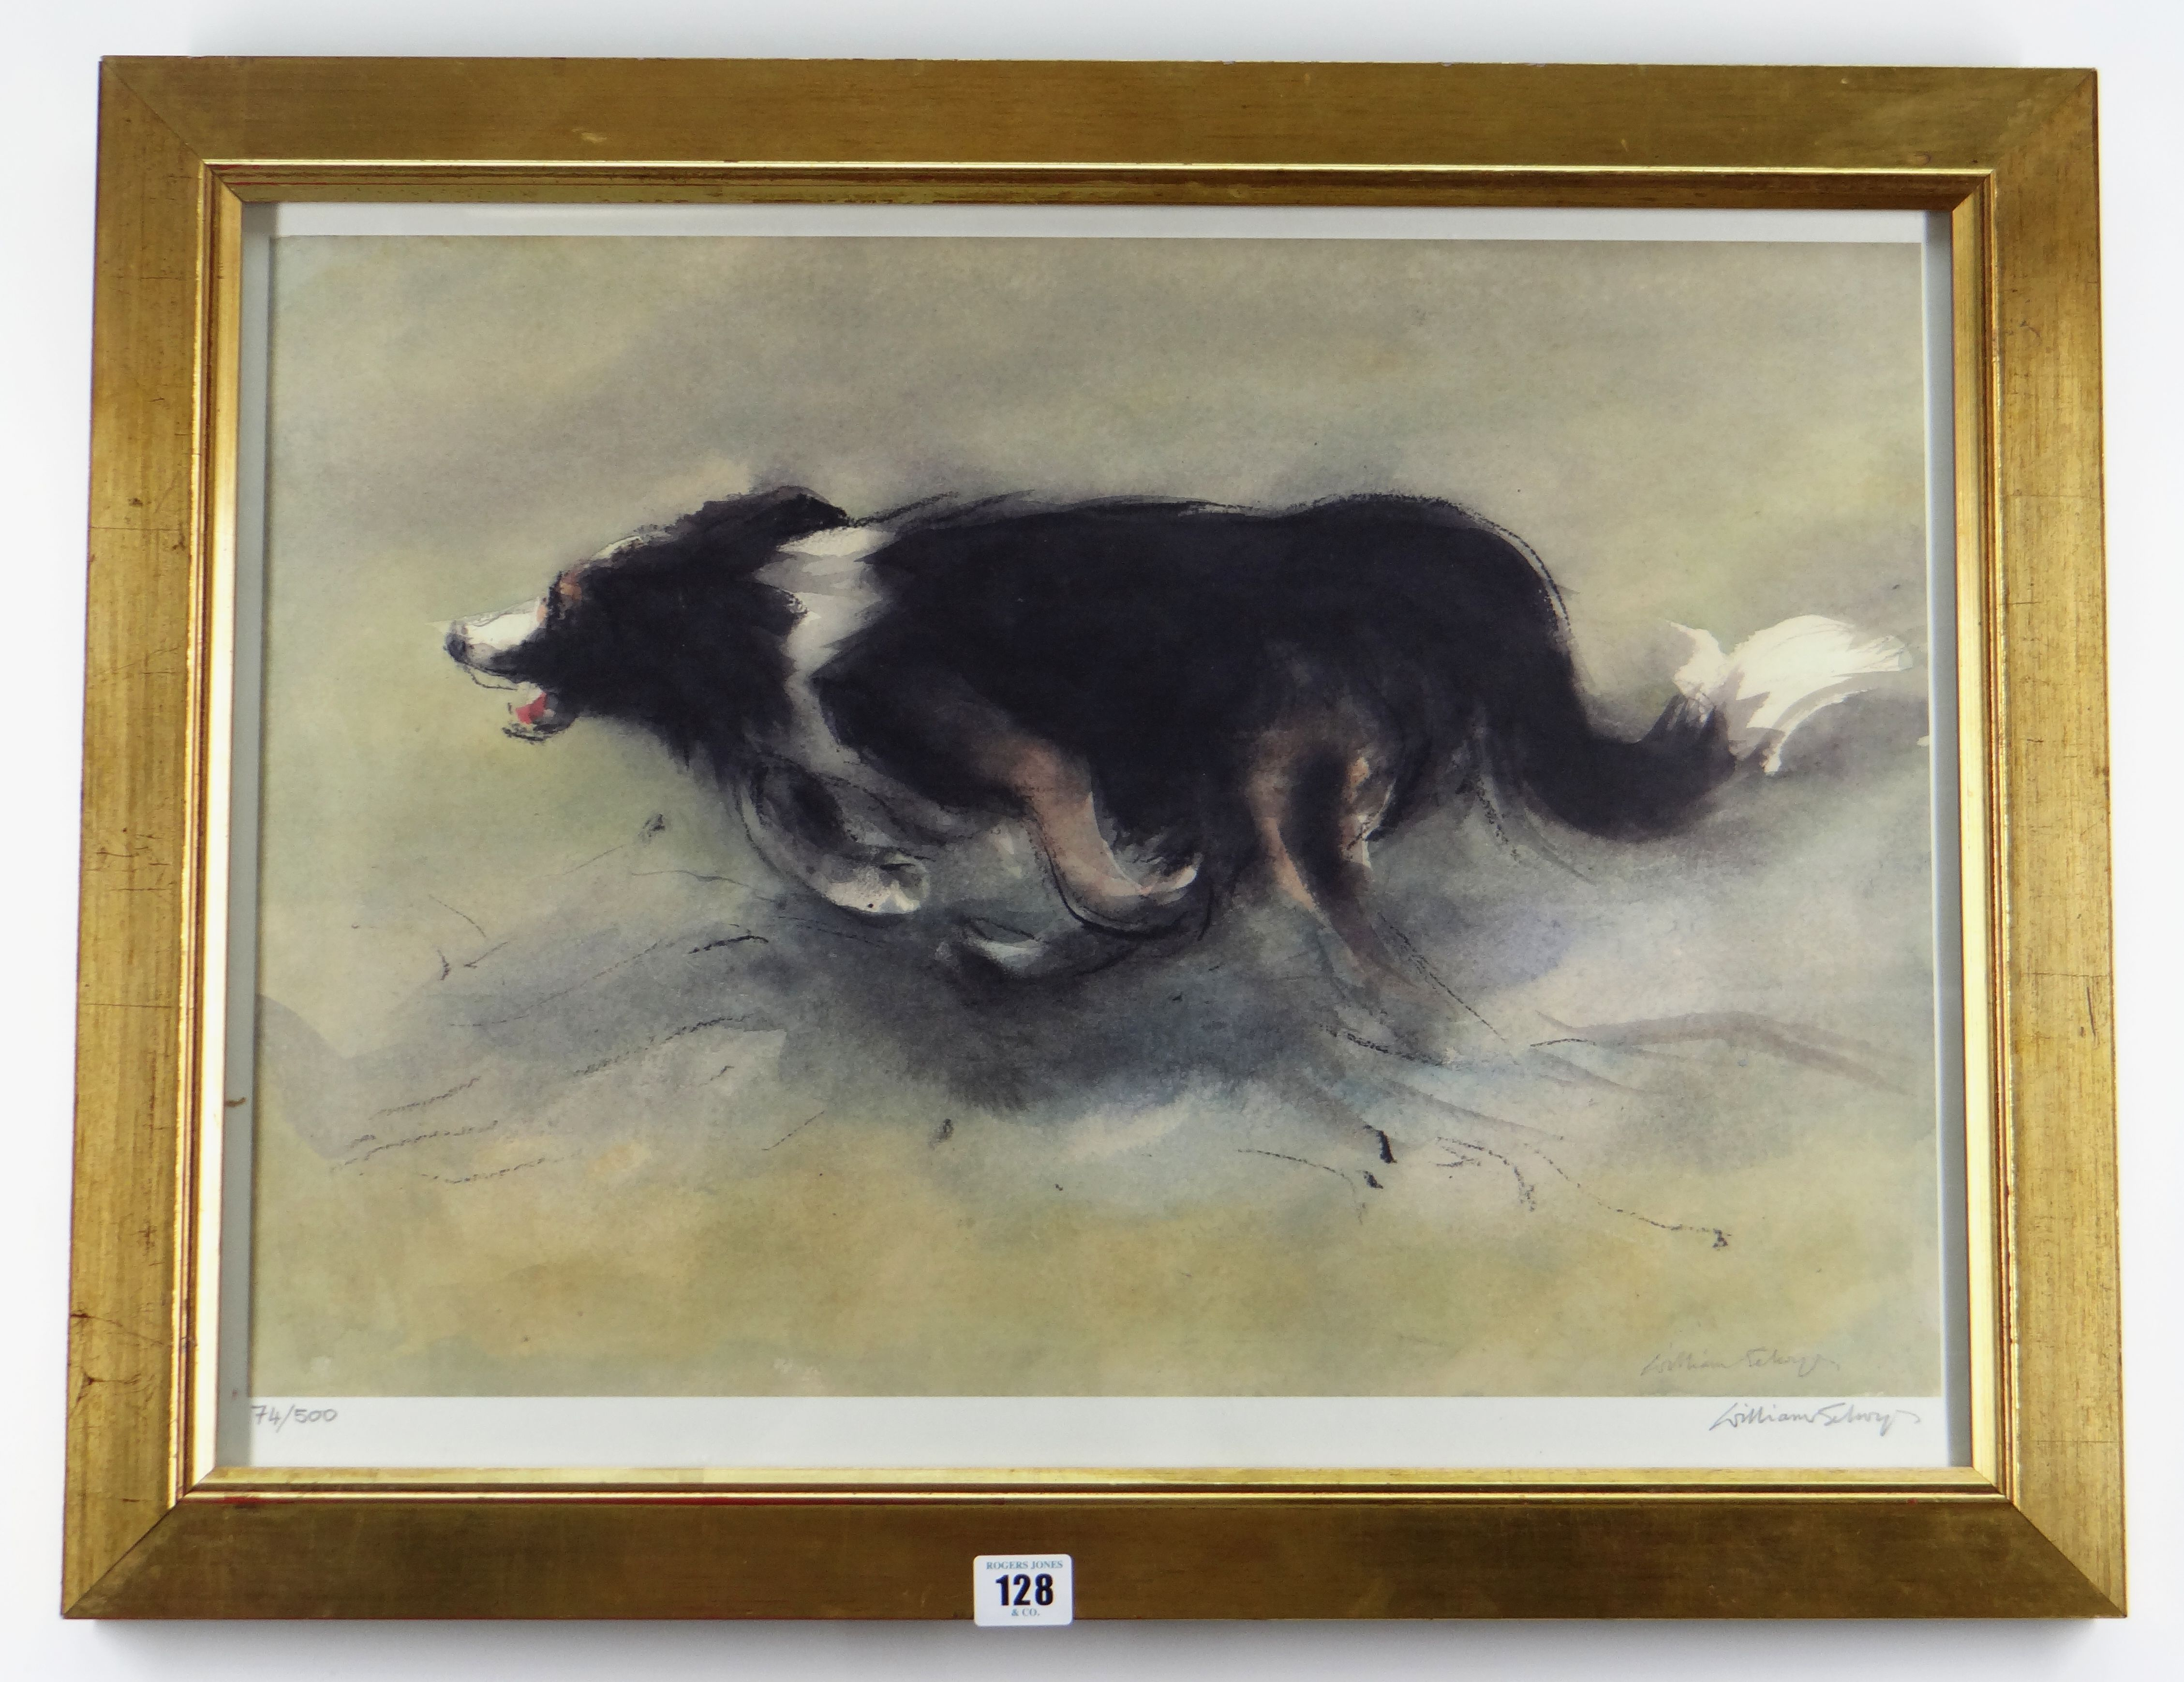 WILLIAM SELWYN limited edition (74/500) colour print - sheep-dog, signed fully in pencil, 42 x - Image 2 of 2